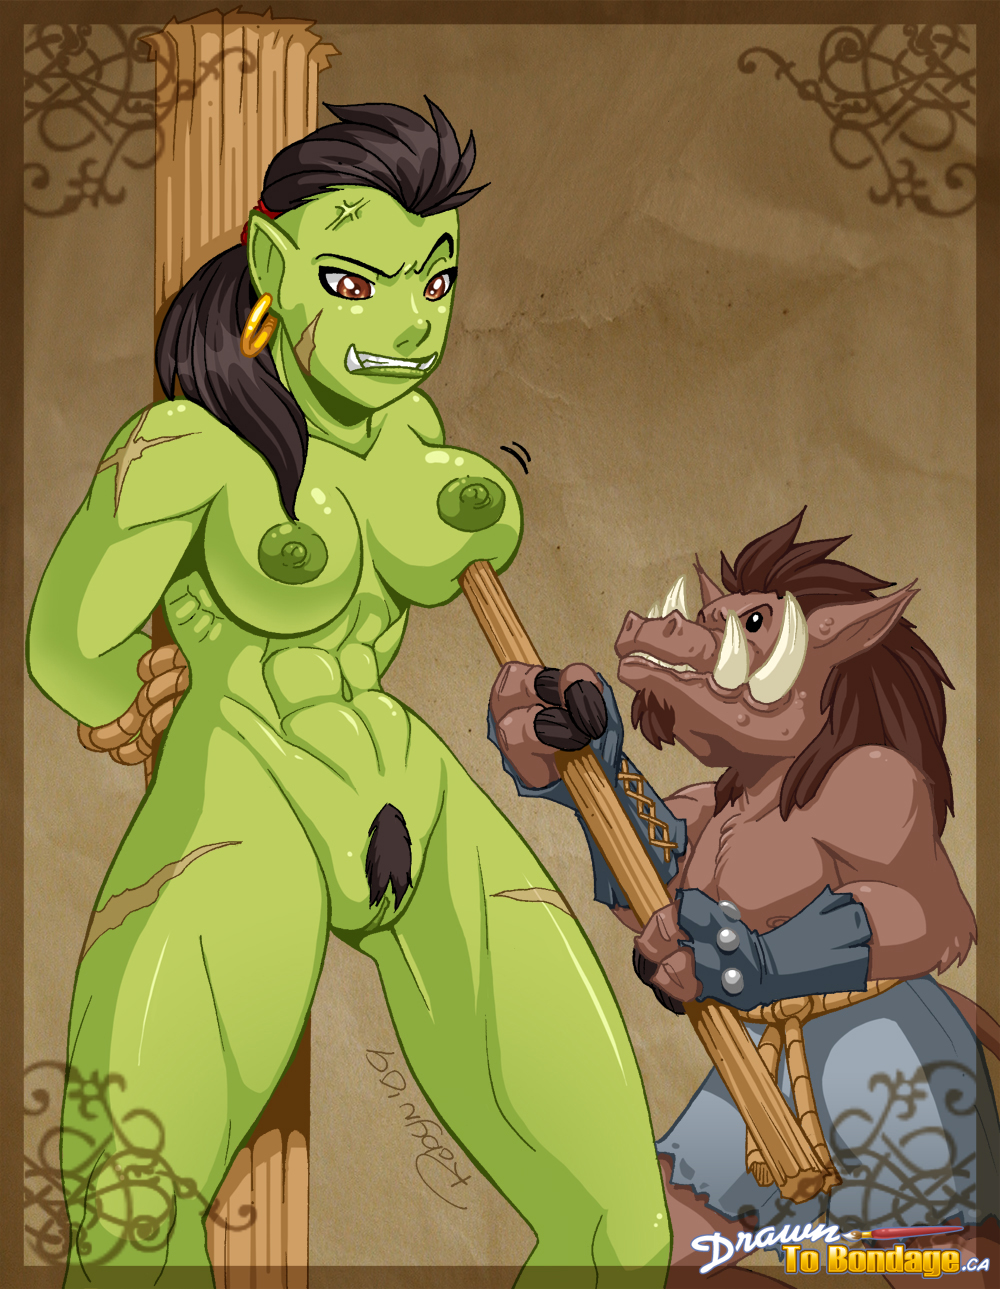 Hot naked world of warcraft orcs sex image